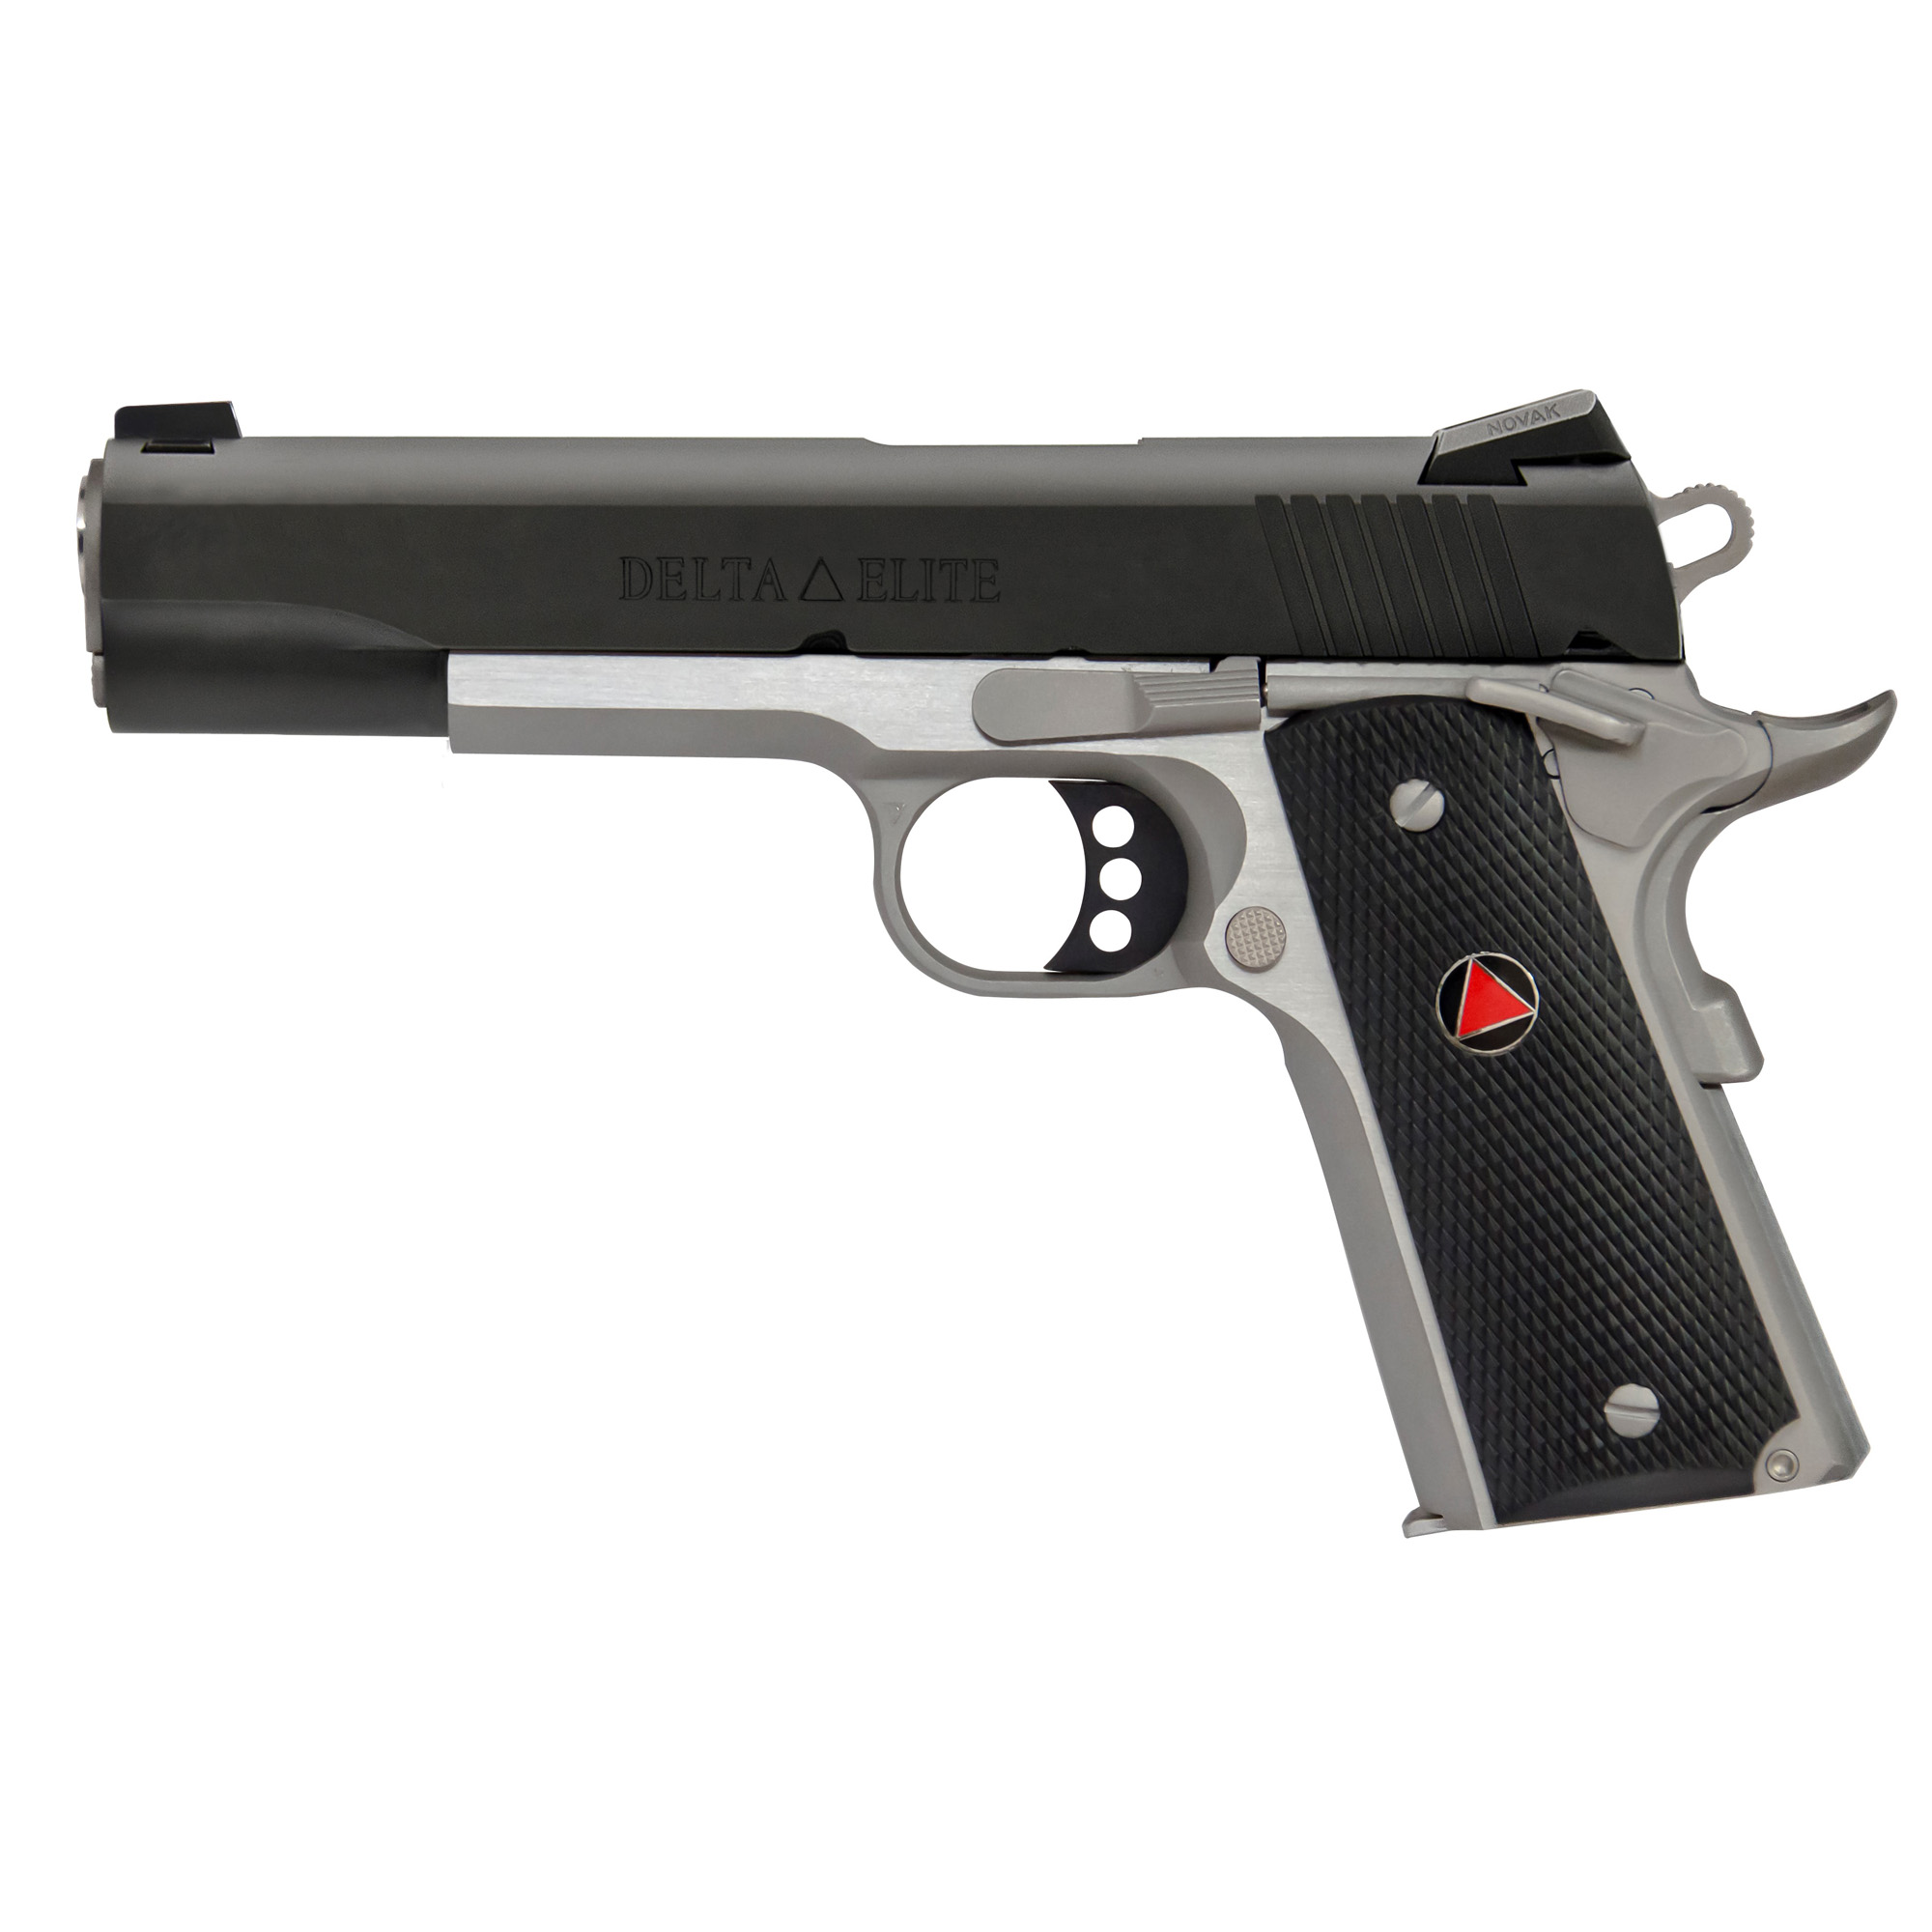 "The time-tested Colt Government Model(R) is available in 10MM. It features an Upswept Beavertail Grip Safety"" Extended Thumb Safety"" and Genuine Novak White Dot Sights. The 10MM offers the power to hunt medium sized game with near .41 Magnum ballistics in a legendary 1911 style pistol. Composite Grips with Delta Medallions make this powerful pistol comfortable to shoot. Available for a limited time in this Special Edition Two Tone finish."